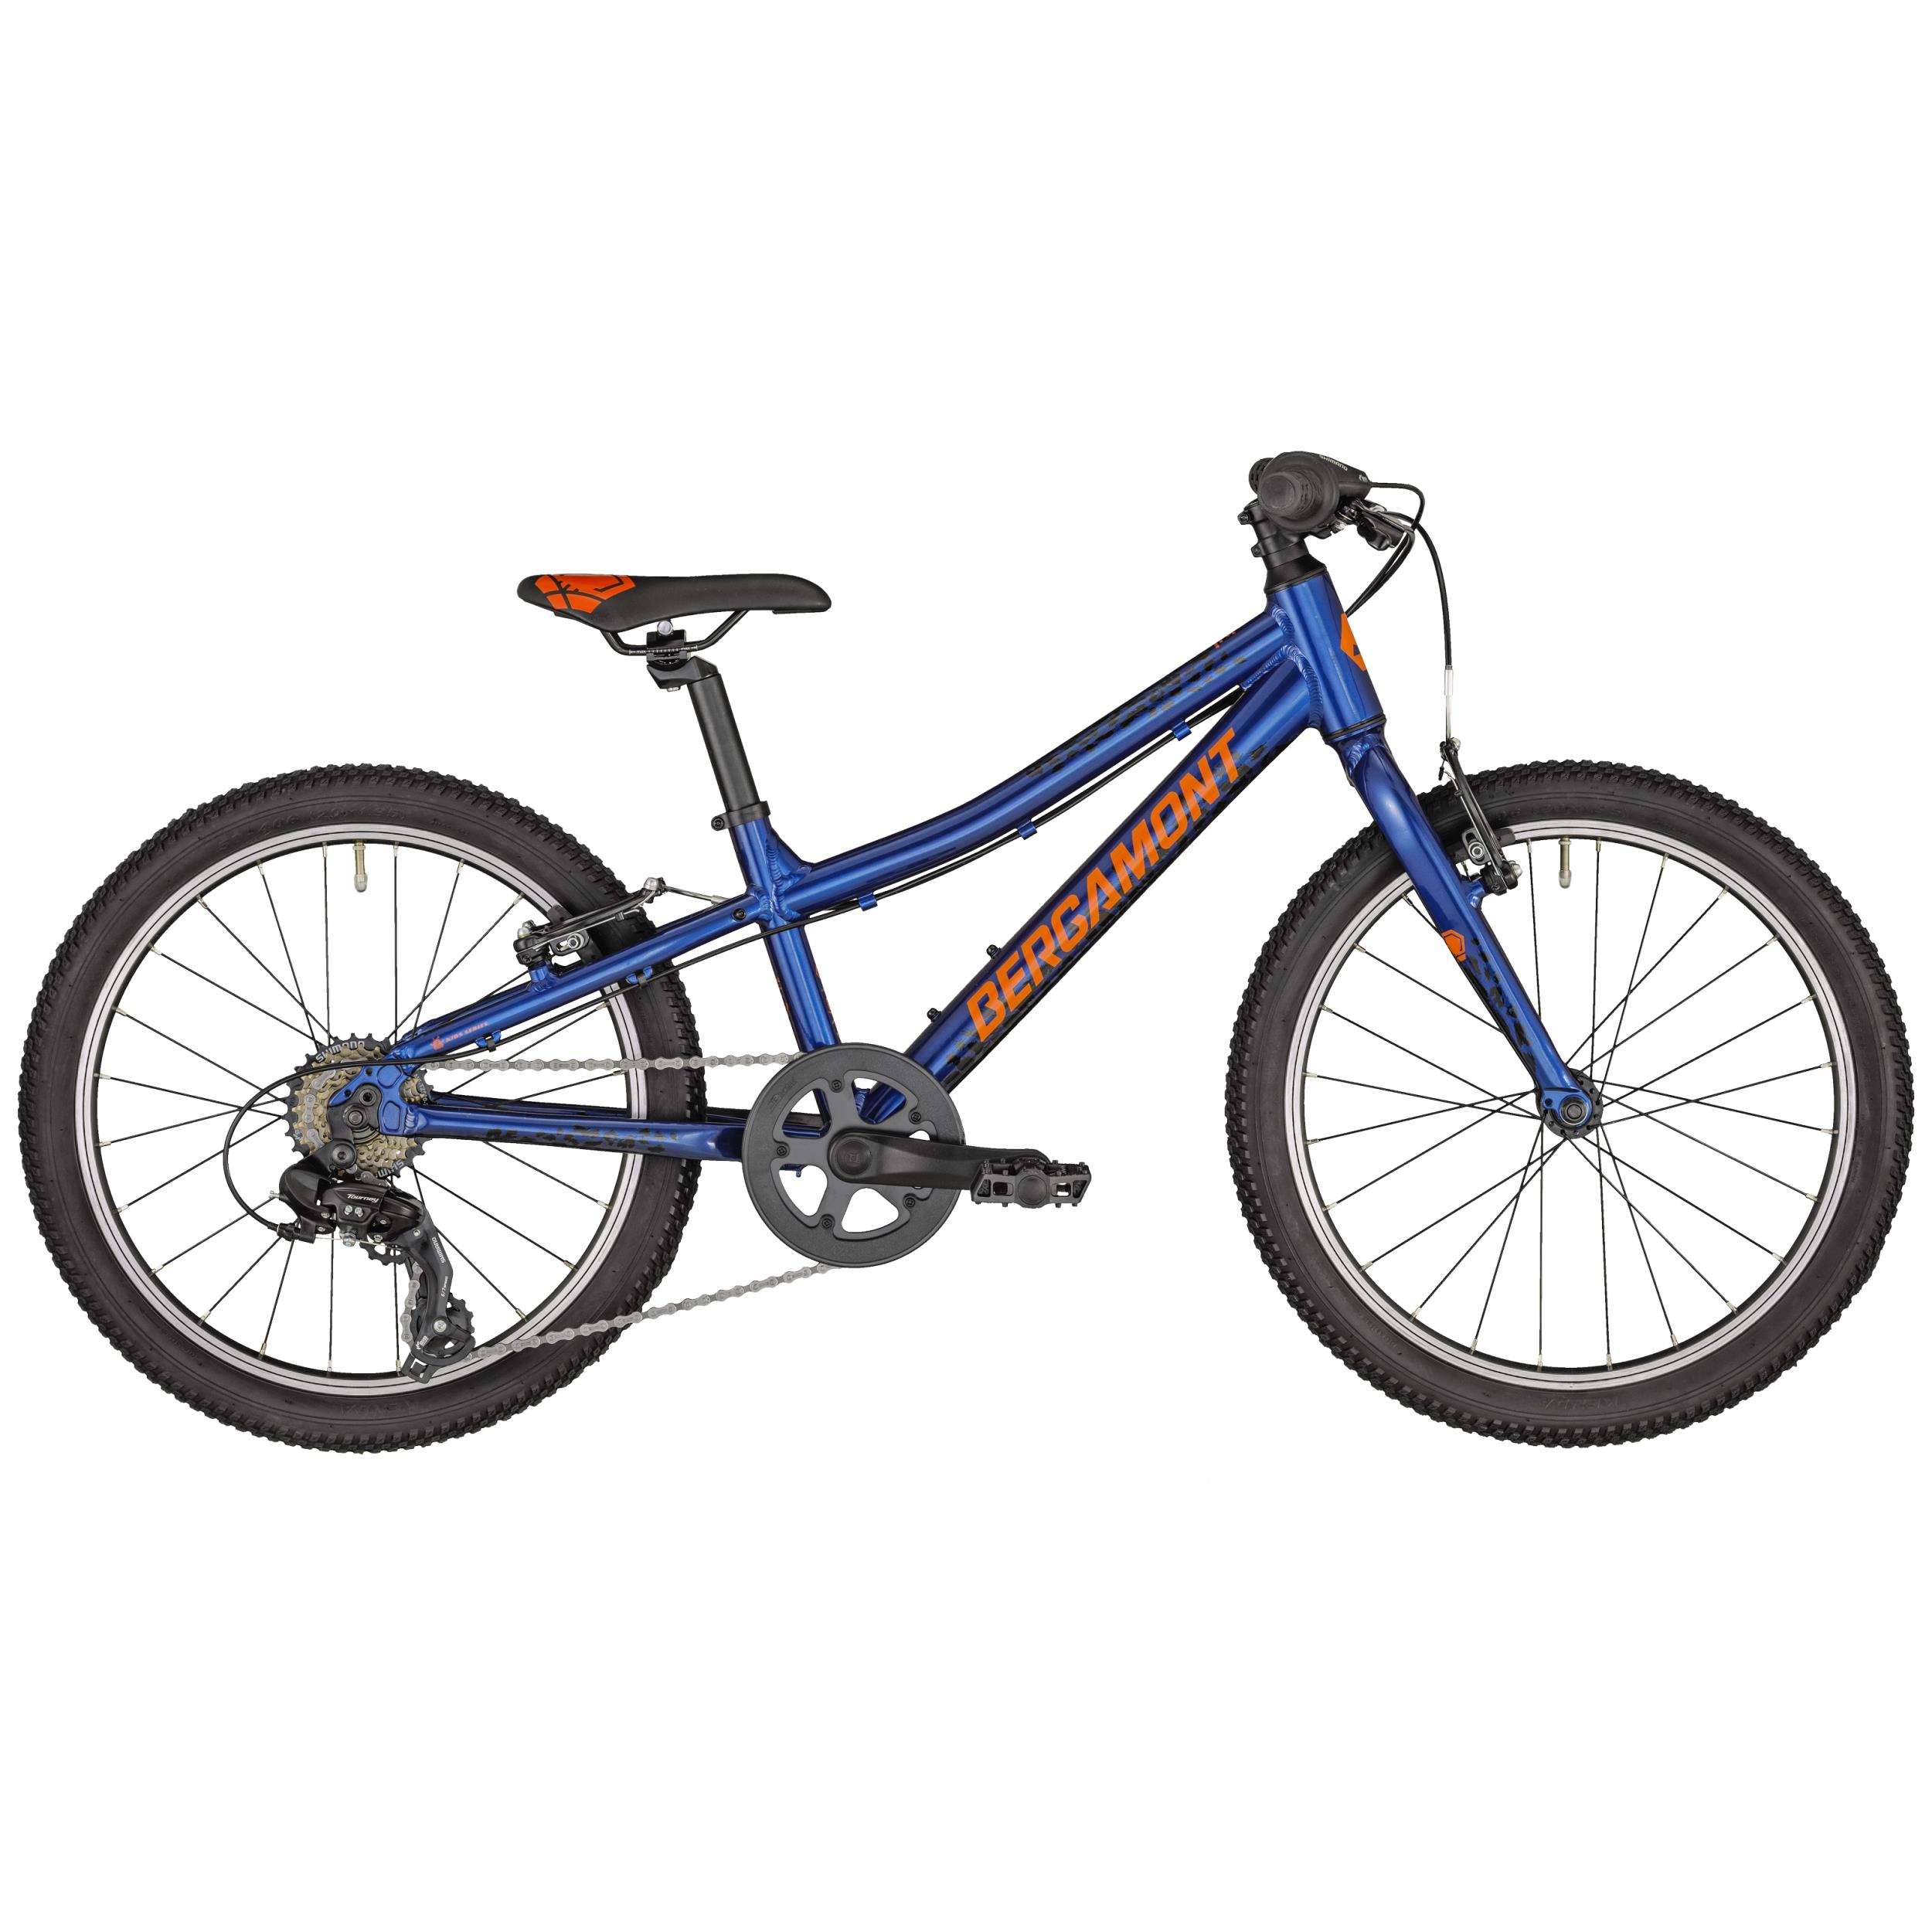 Bergamont Bergamonster 20 Boy atlantic blue/black/orange (shiny) 2020 - 20 -